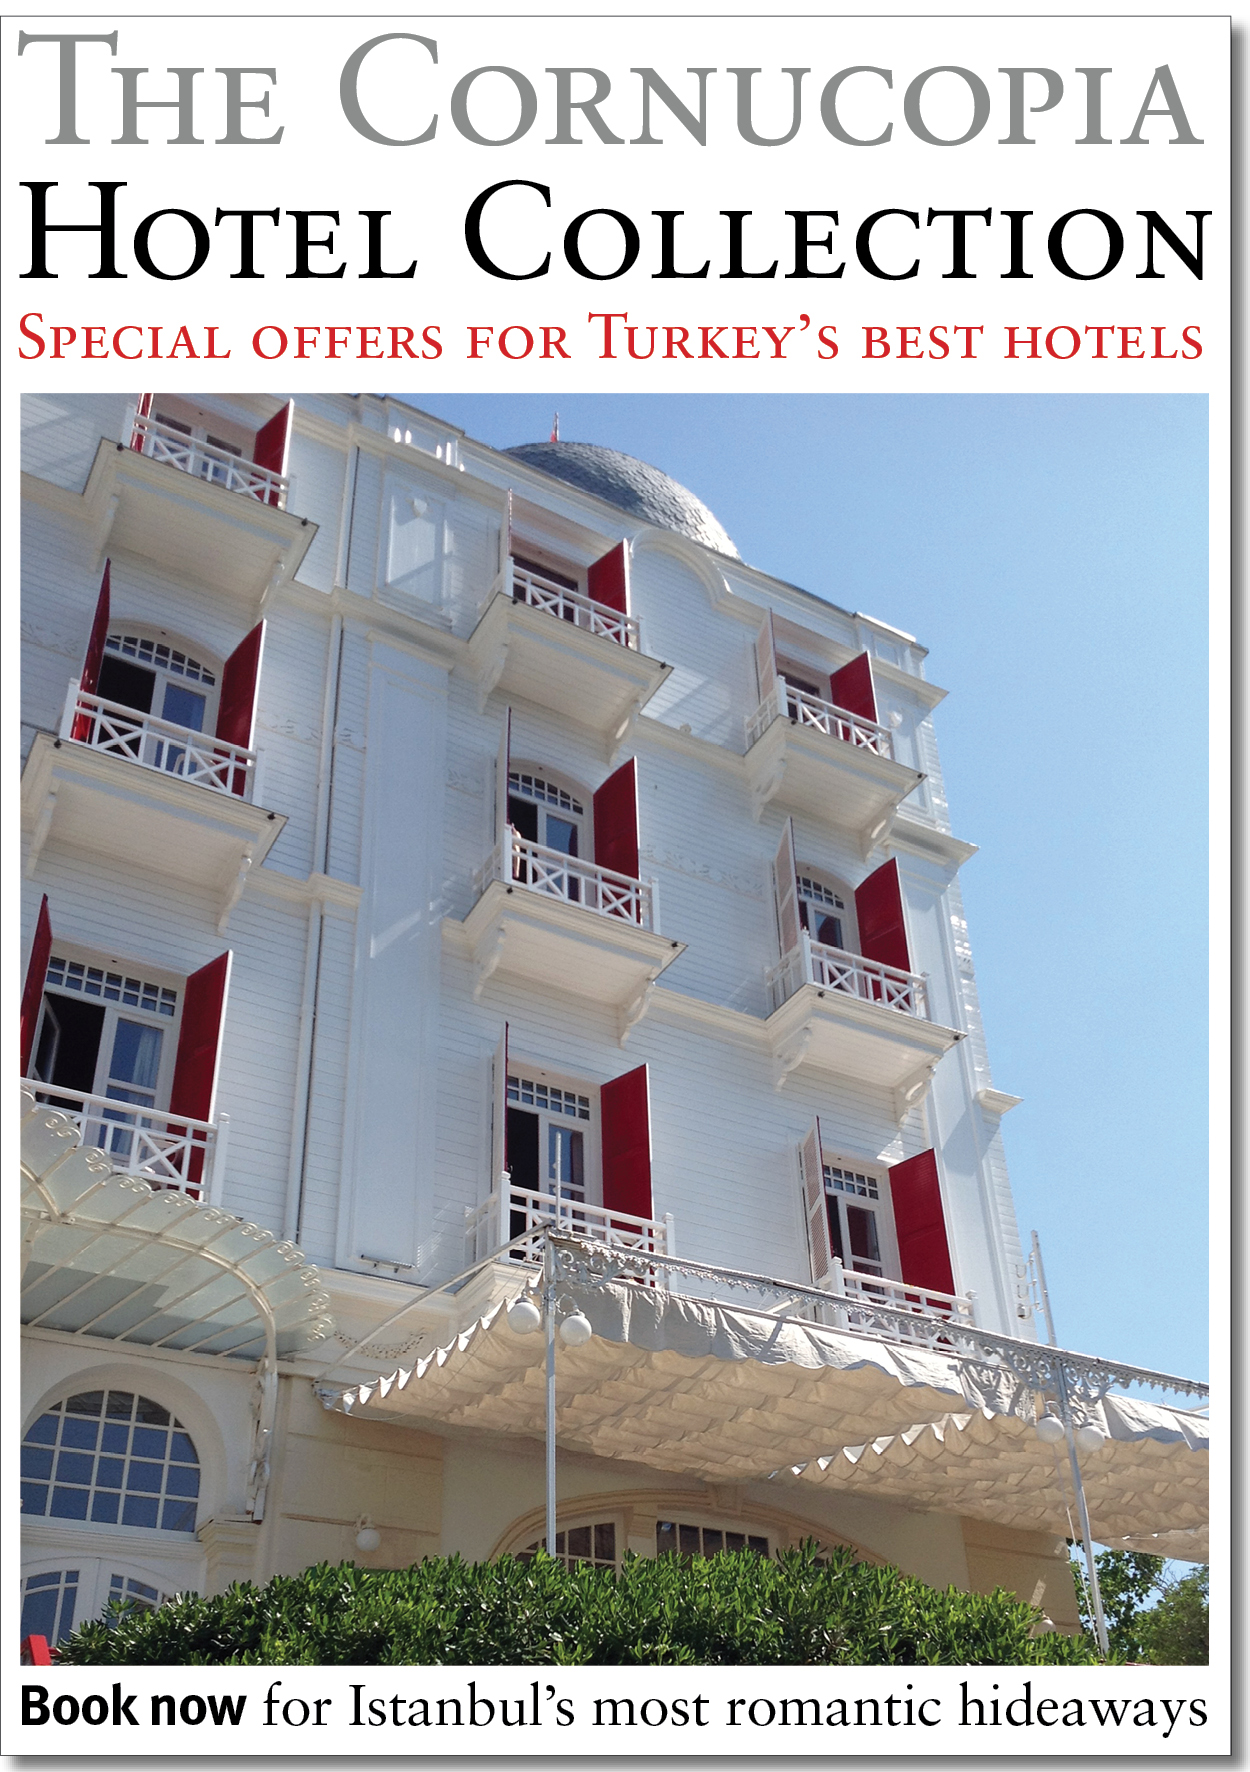 Book now for romantic hideaways in Turkey